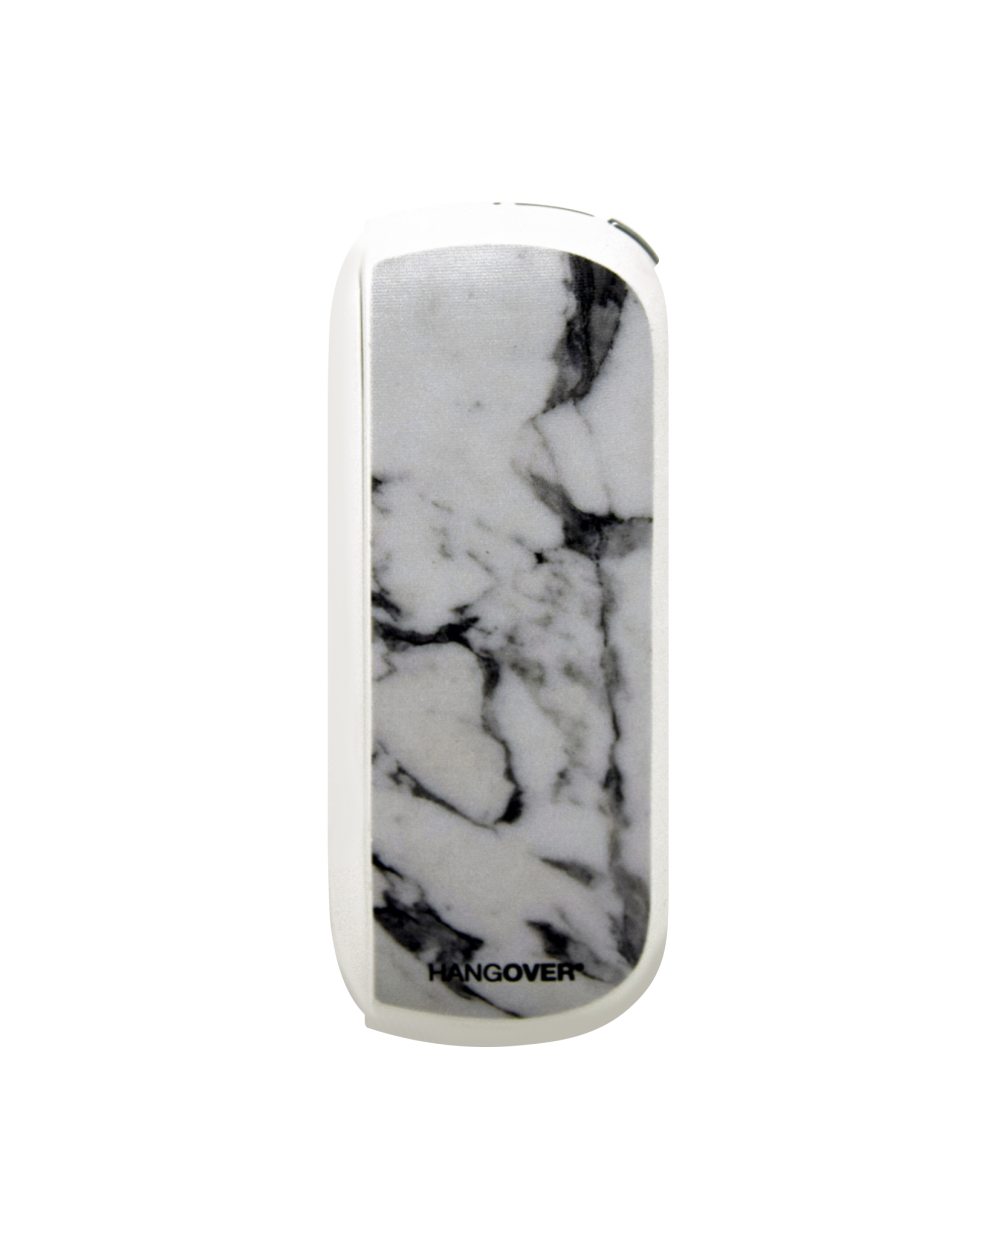 Marble Carrara - Cover SmartSkin in Tessuto Speciale for Iqos 3 by Hangover